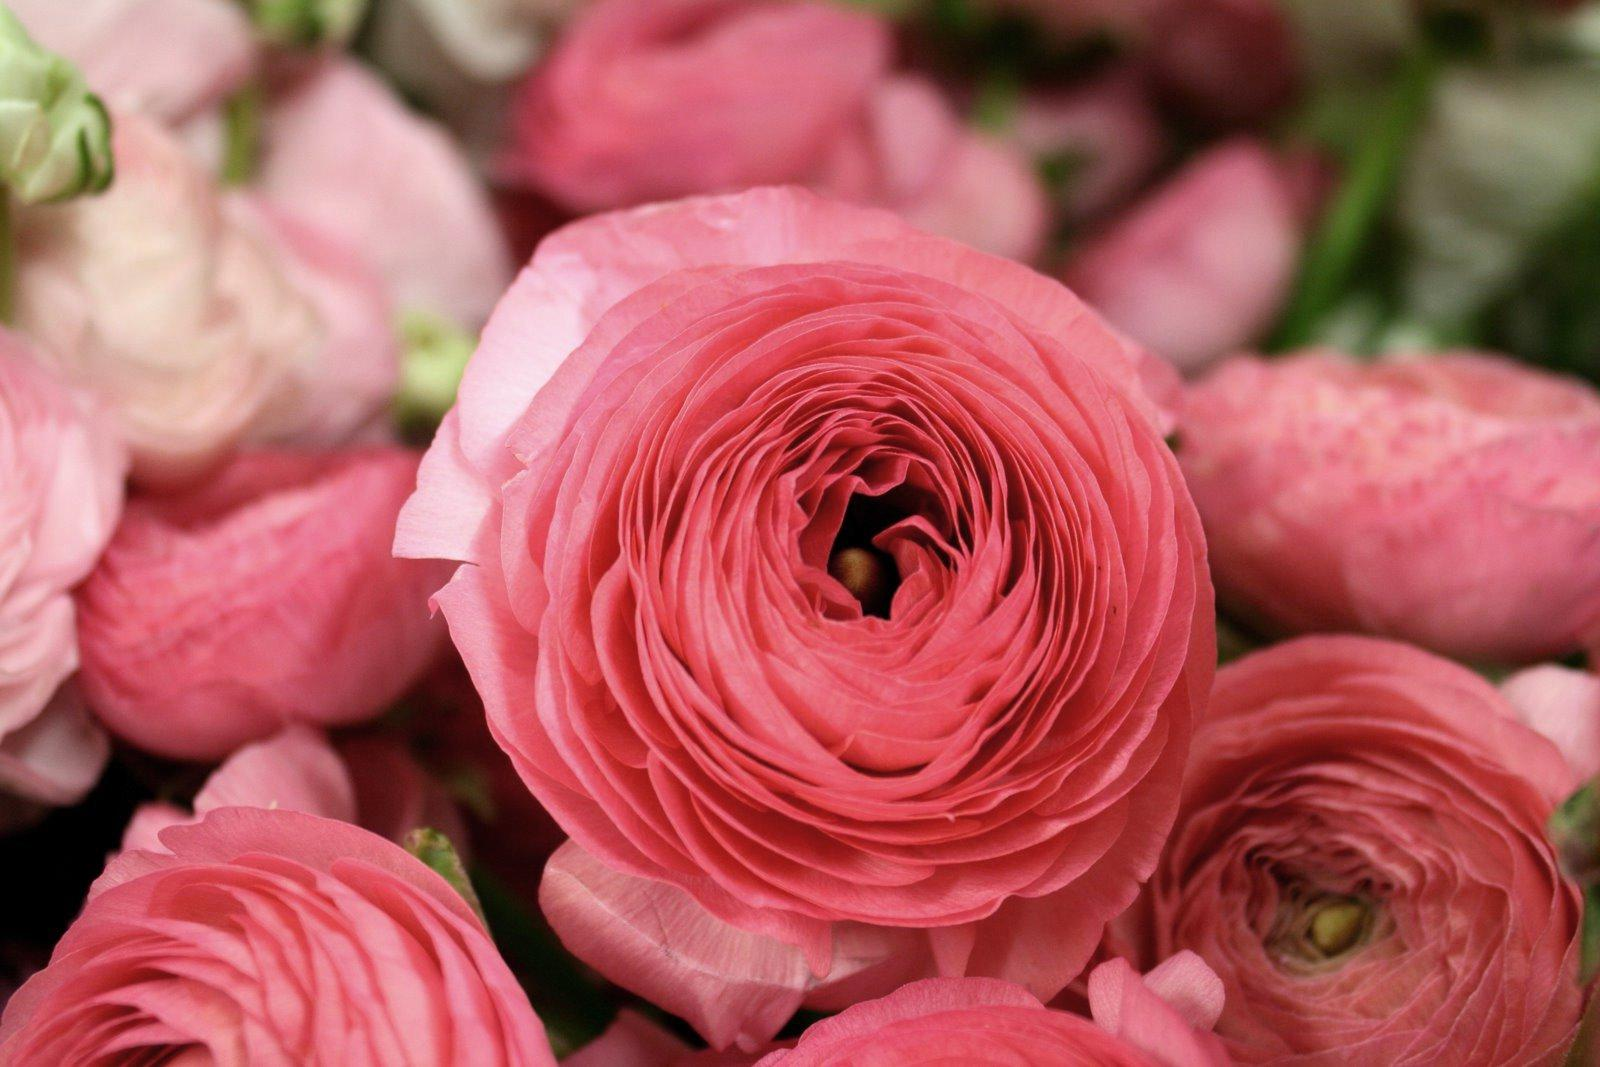 I think ranunculus flowers